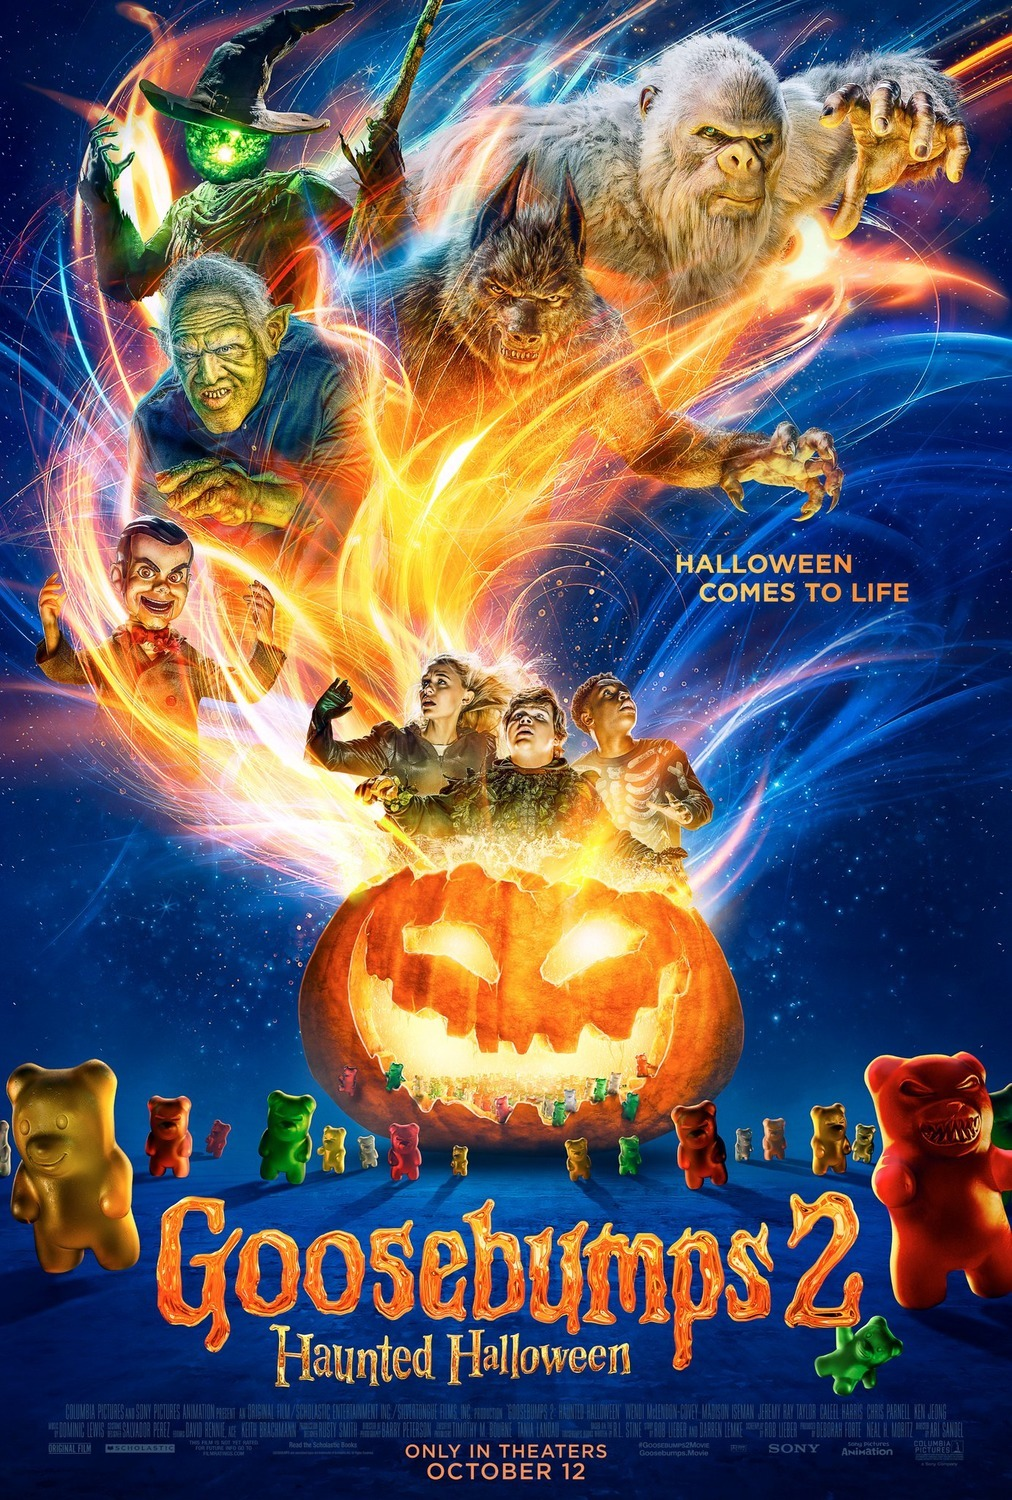 A  large jack-o-lantern has three kids standing in it with what looks like fireworks behind them.  A witch, Frankenstein's monster, a werewolf, and other scary creatures loom behind them.